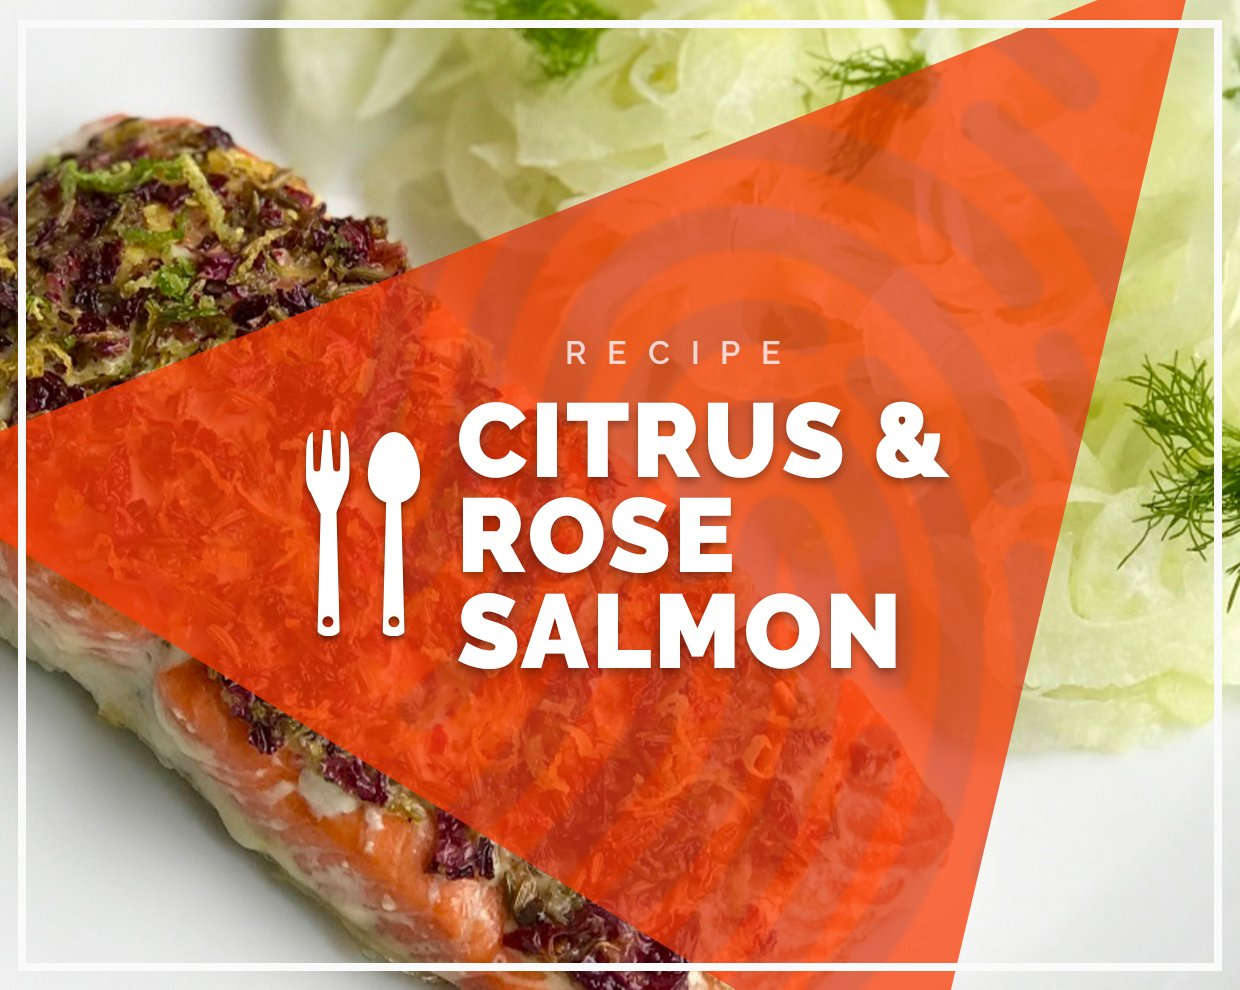 Fragrant Citrus & Rose Salmon